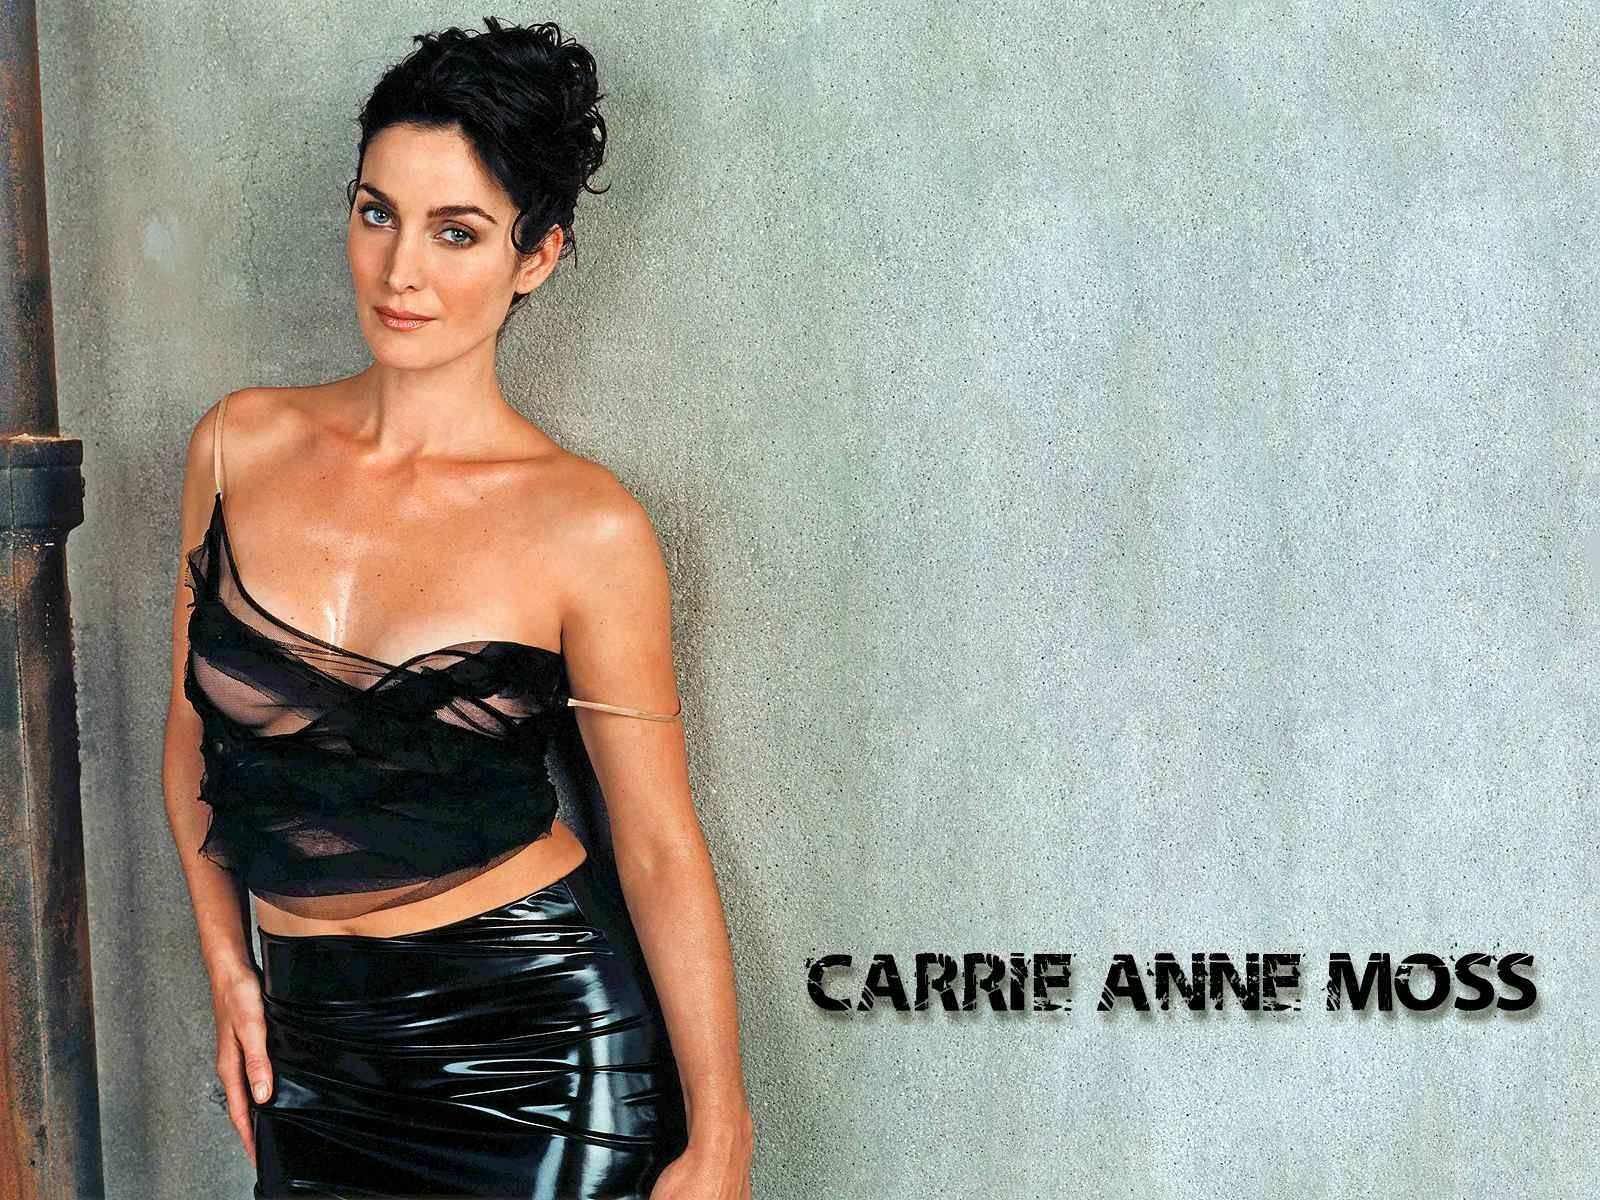 Carrie anne moss nude pics galleries 75